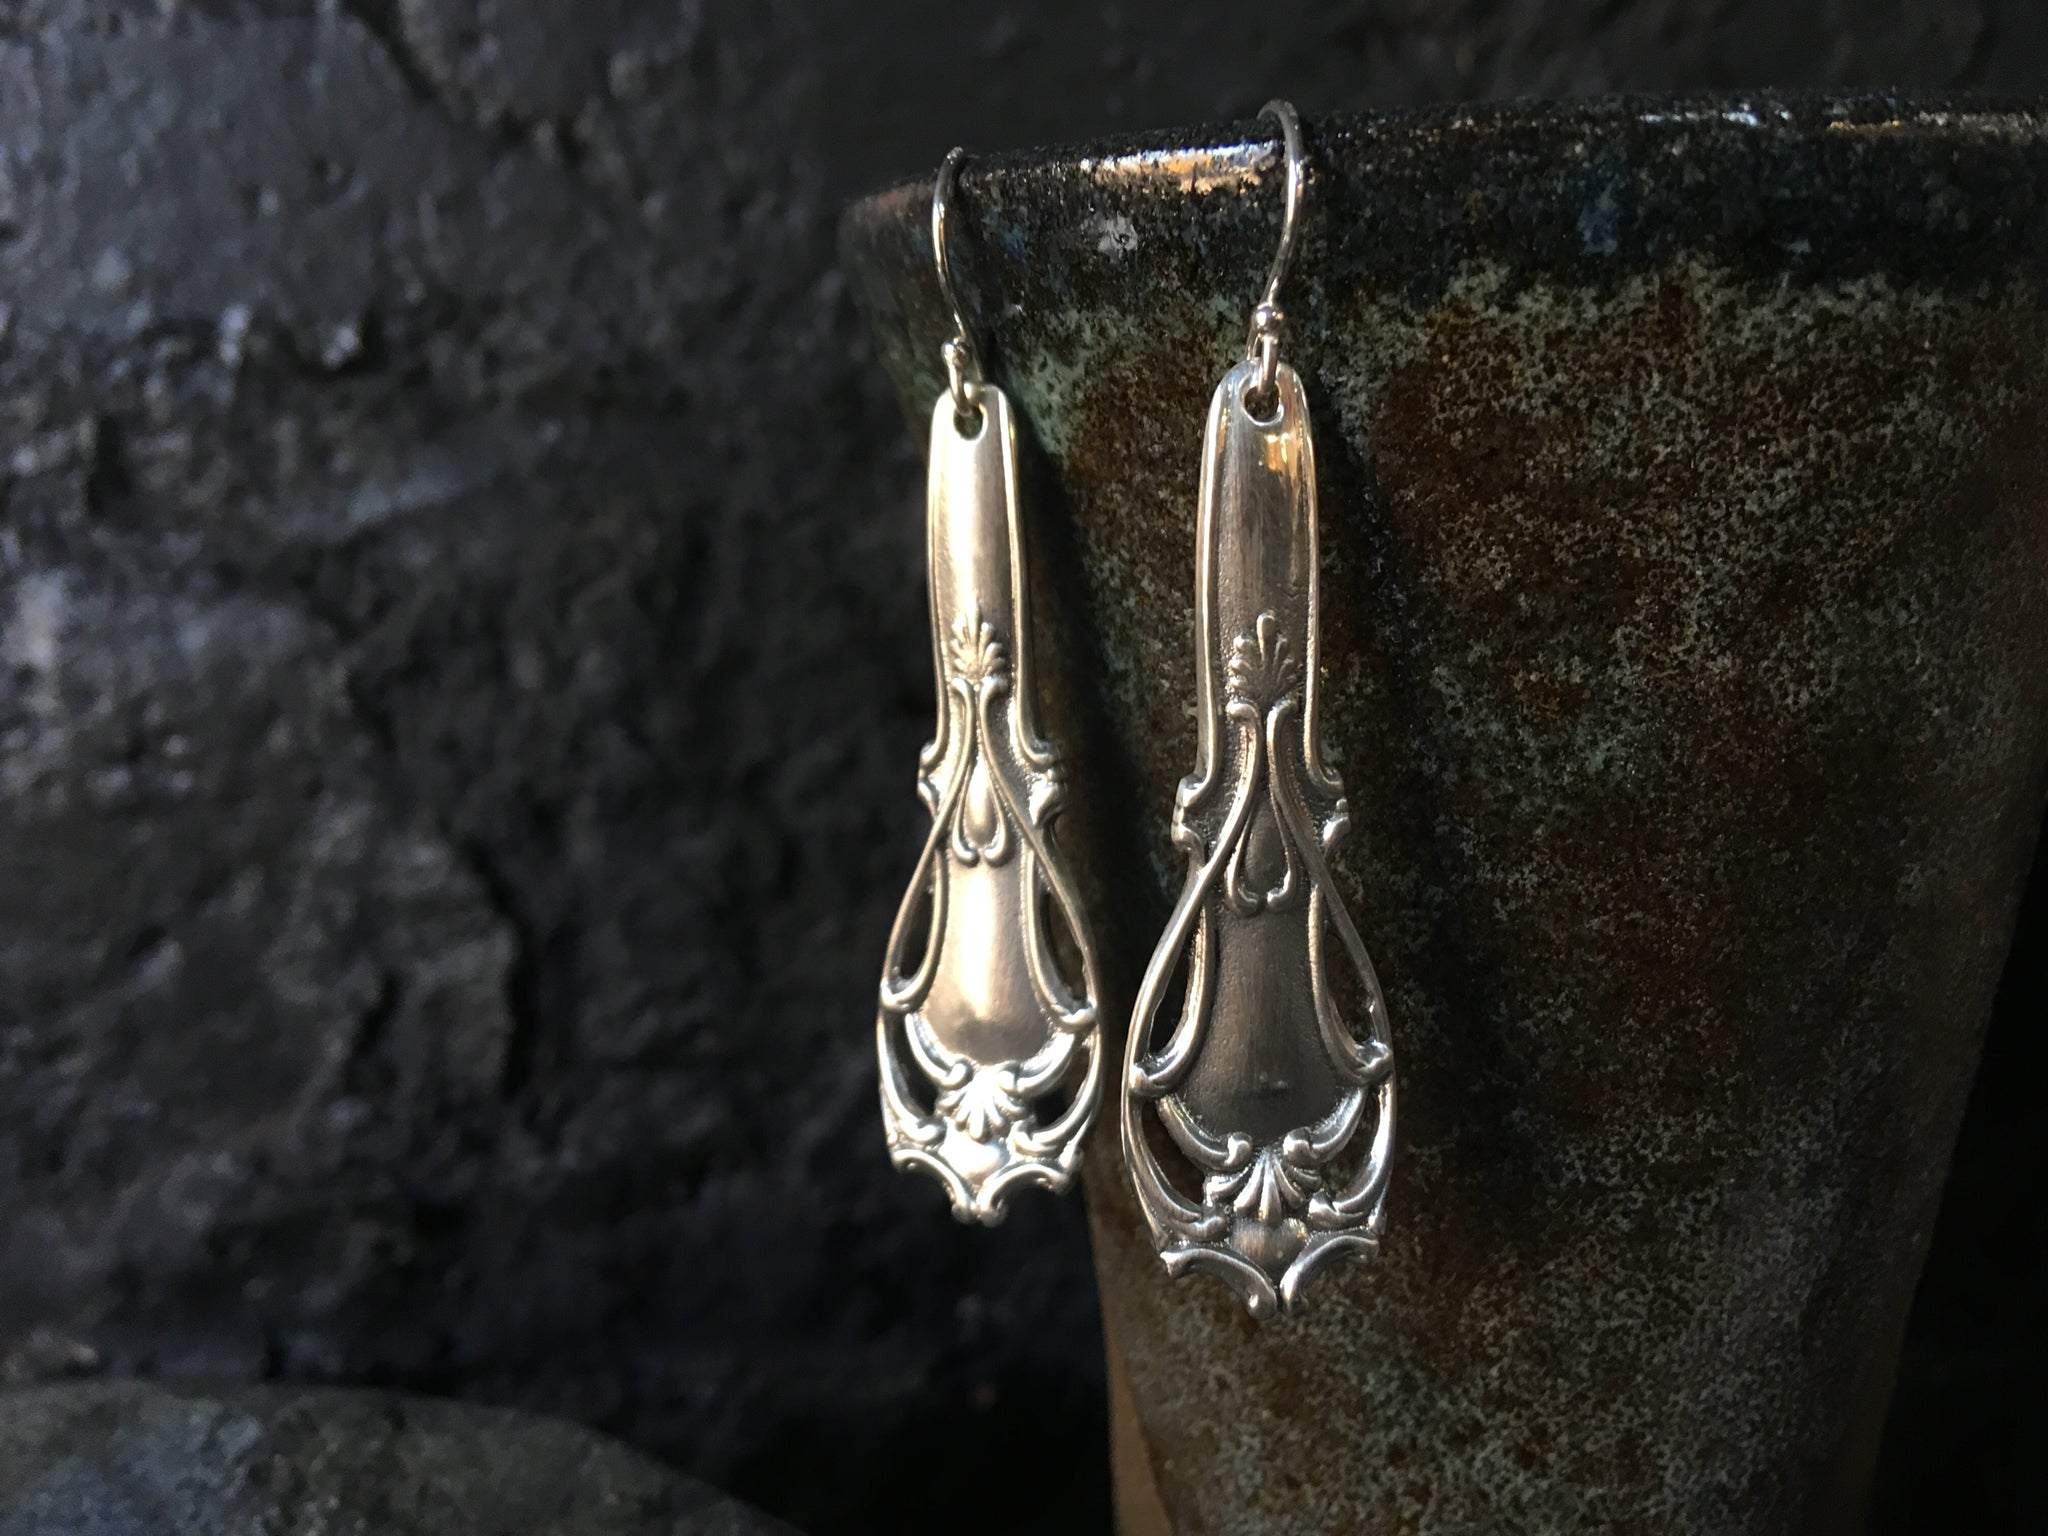 Sterling silver antique spoon earrings - divine gothic